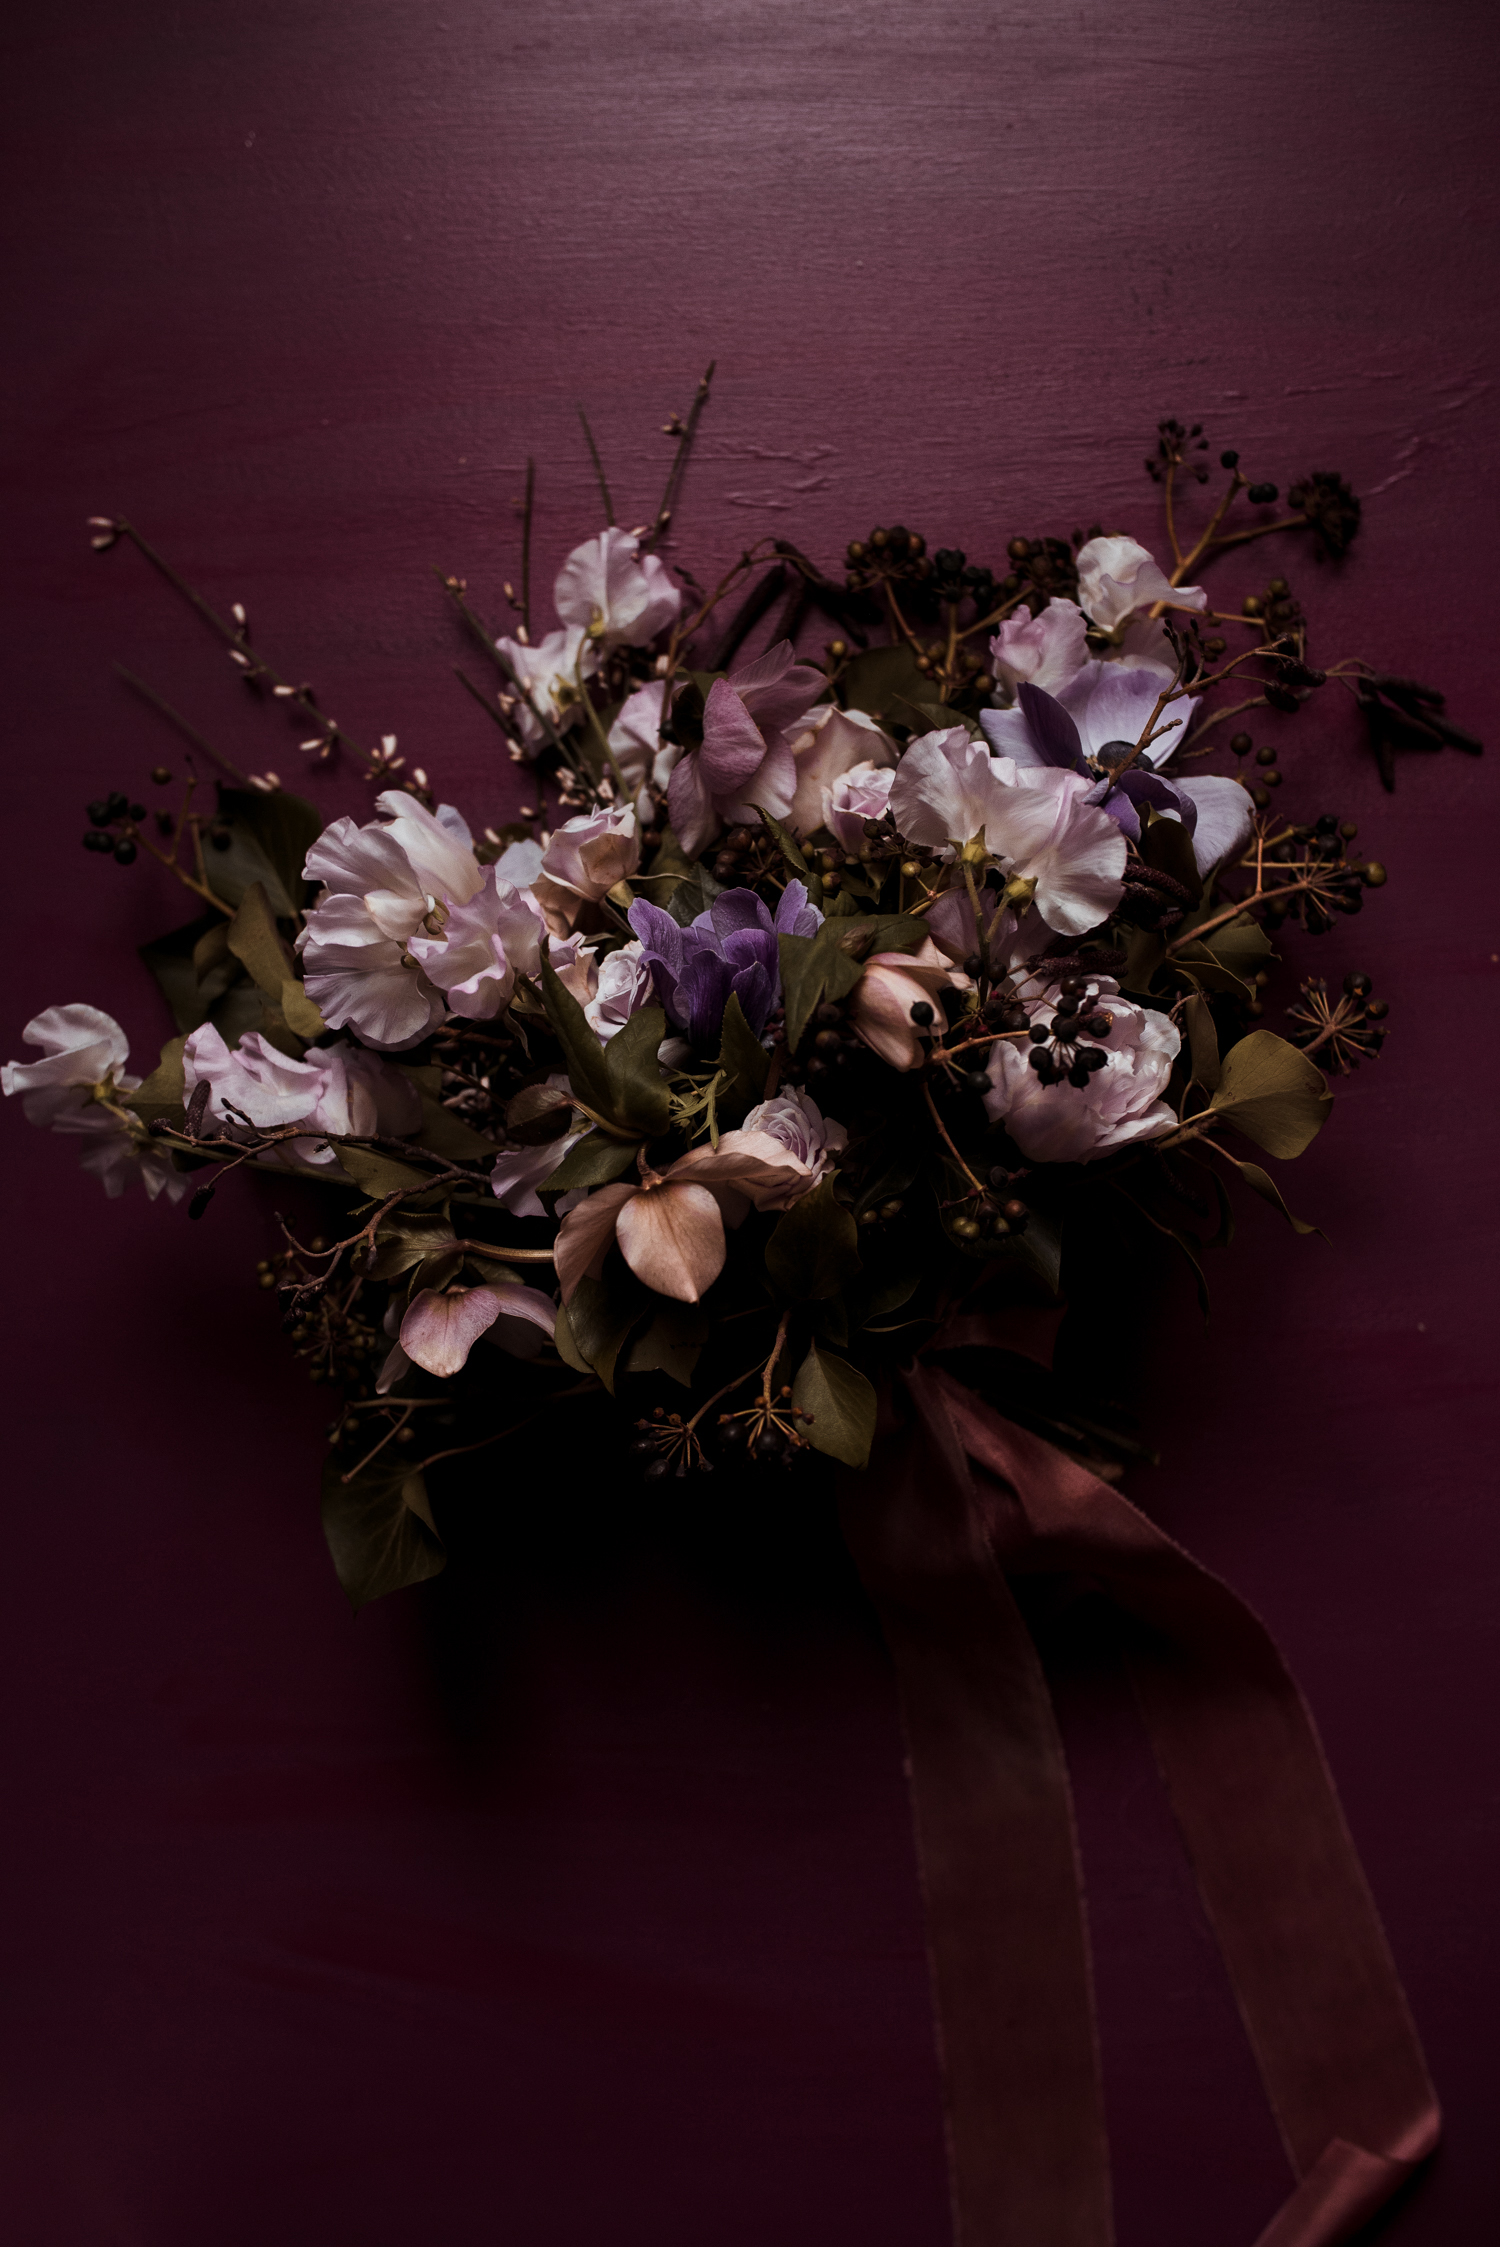 Claire-Minuit-Blooms-Staccato-Fiore-3.jpg